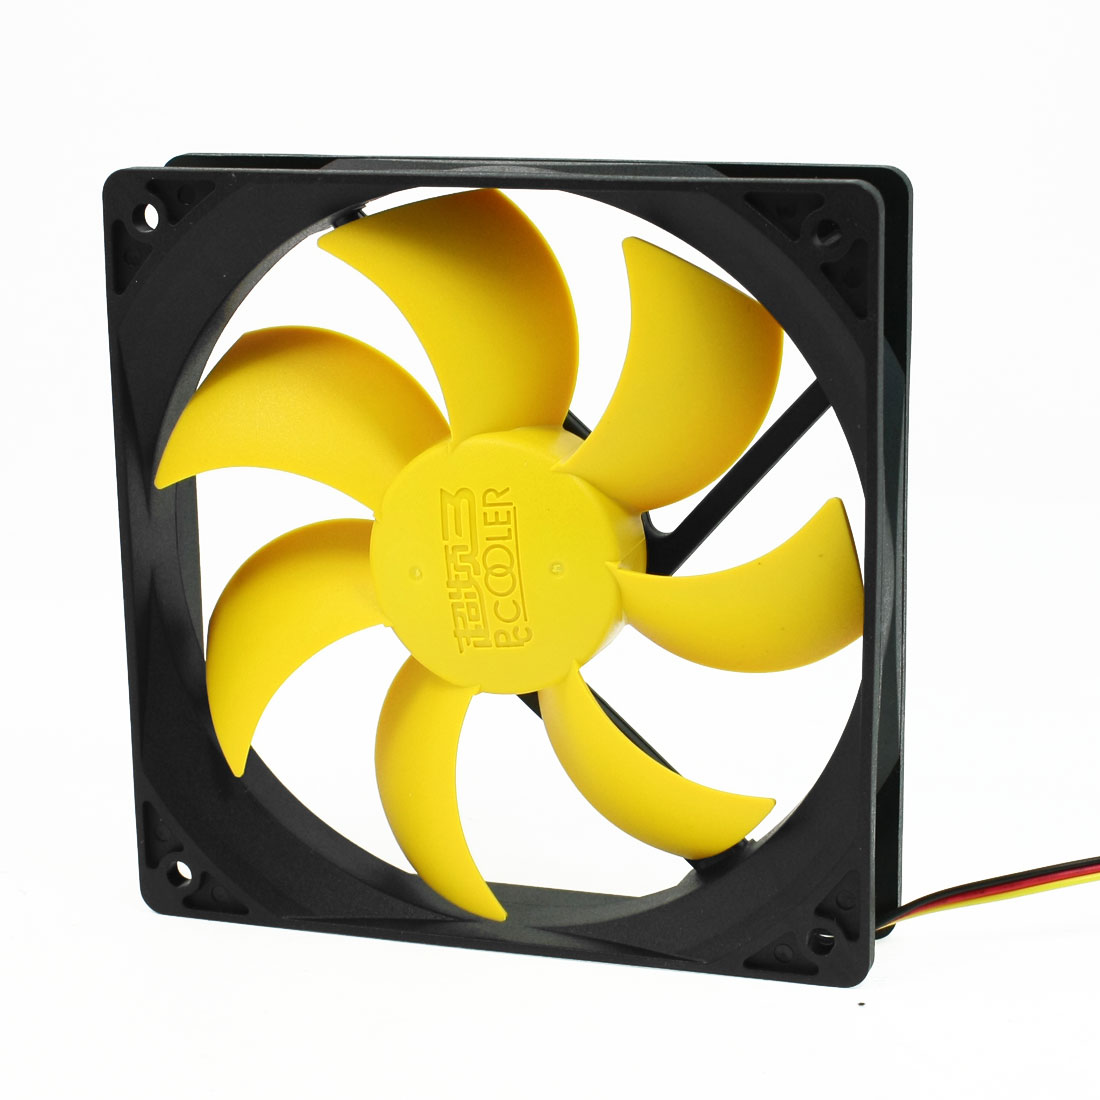 12cm Hydramatic Motor Connector Yellow Flabellums PC Case Fan Cooler